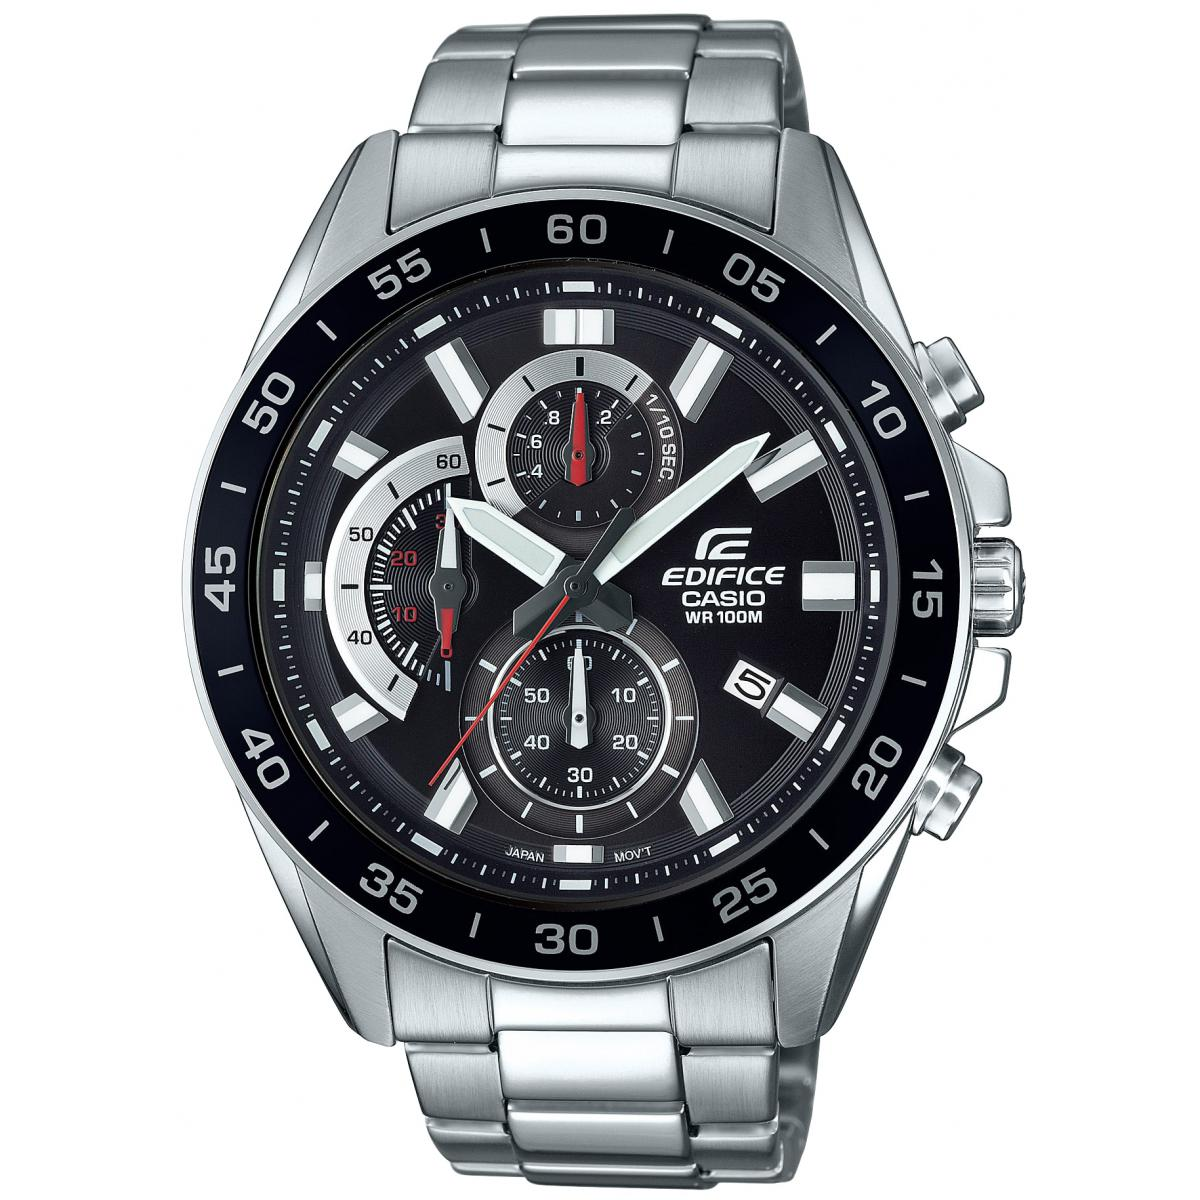 Montre Casio EFV-550D-1AVUEF - Casio Edifice Chrono Etanche Homme